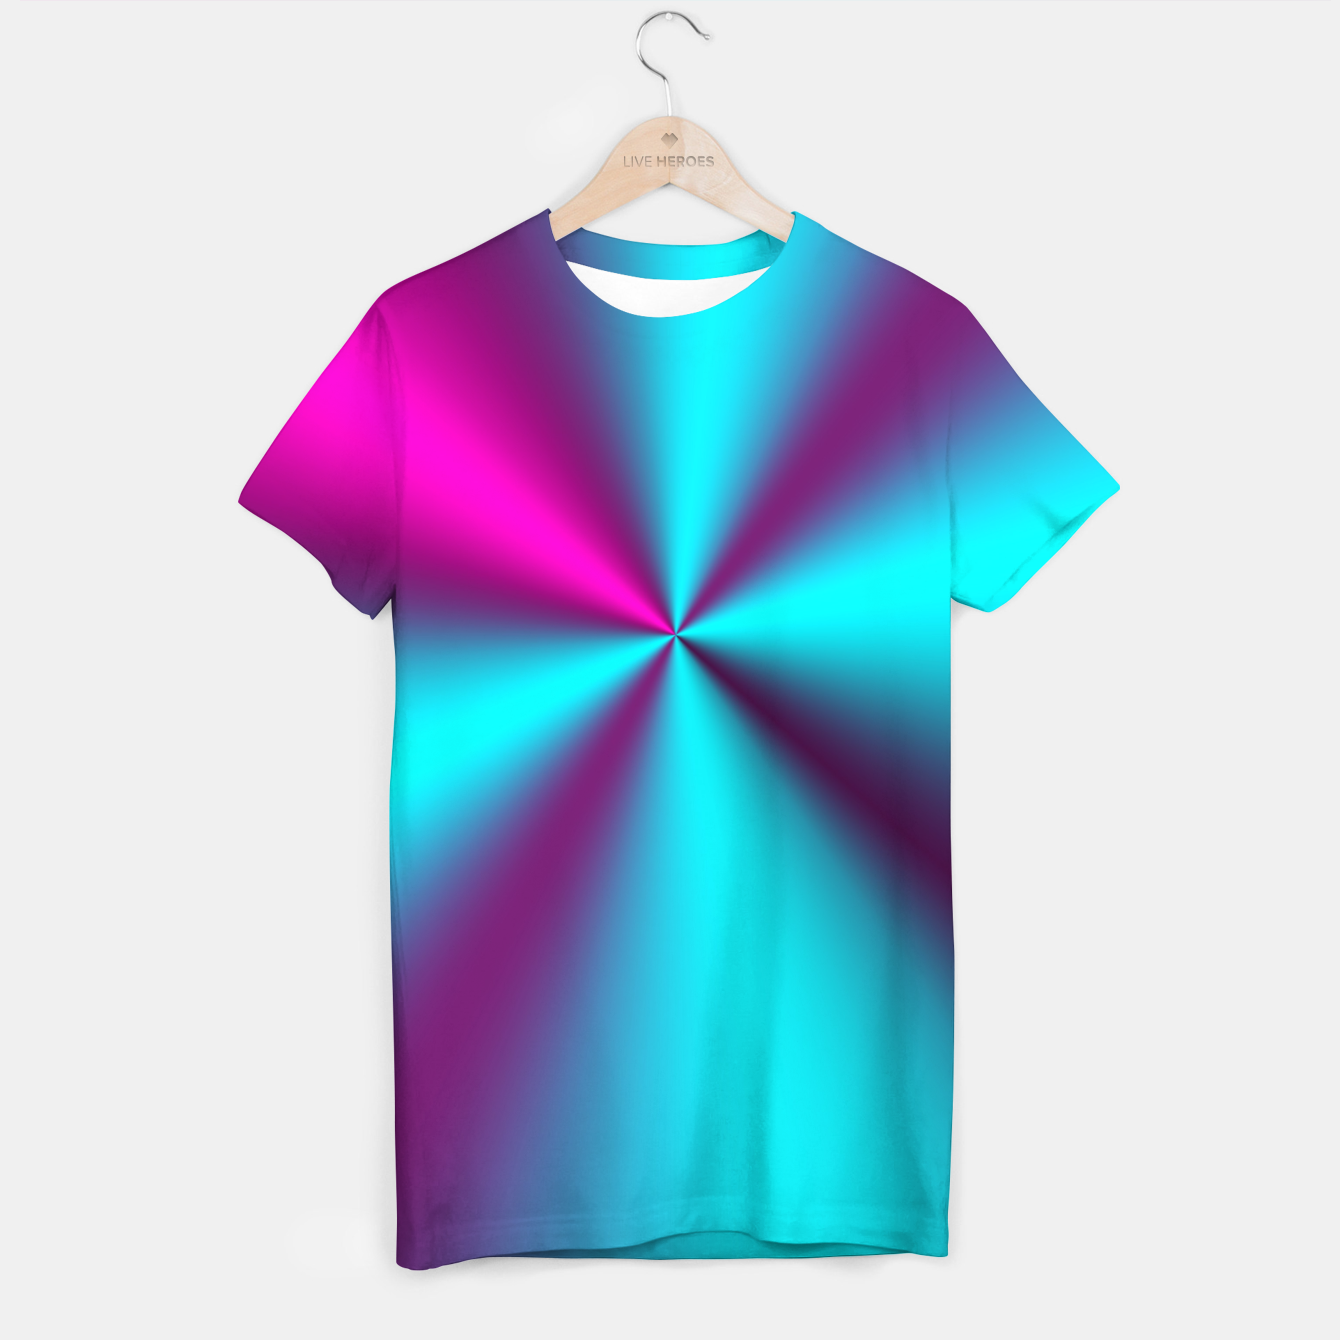 Zdjęcie Violet Illusion silk waves T-shirt - Live Heroes